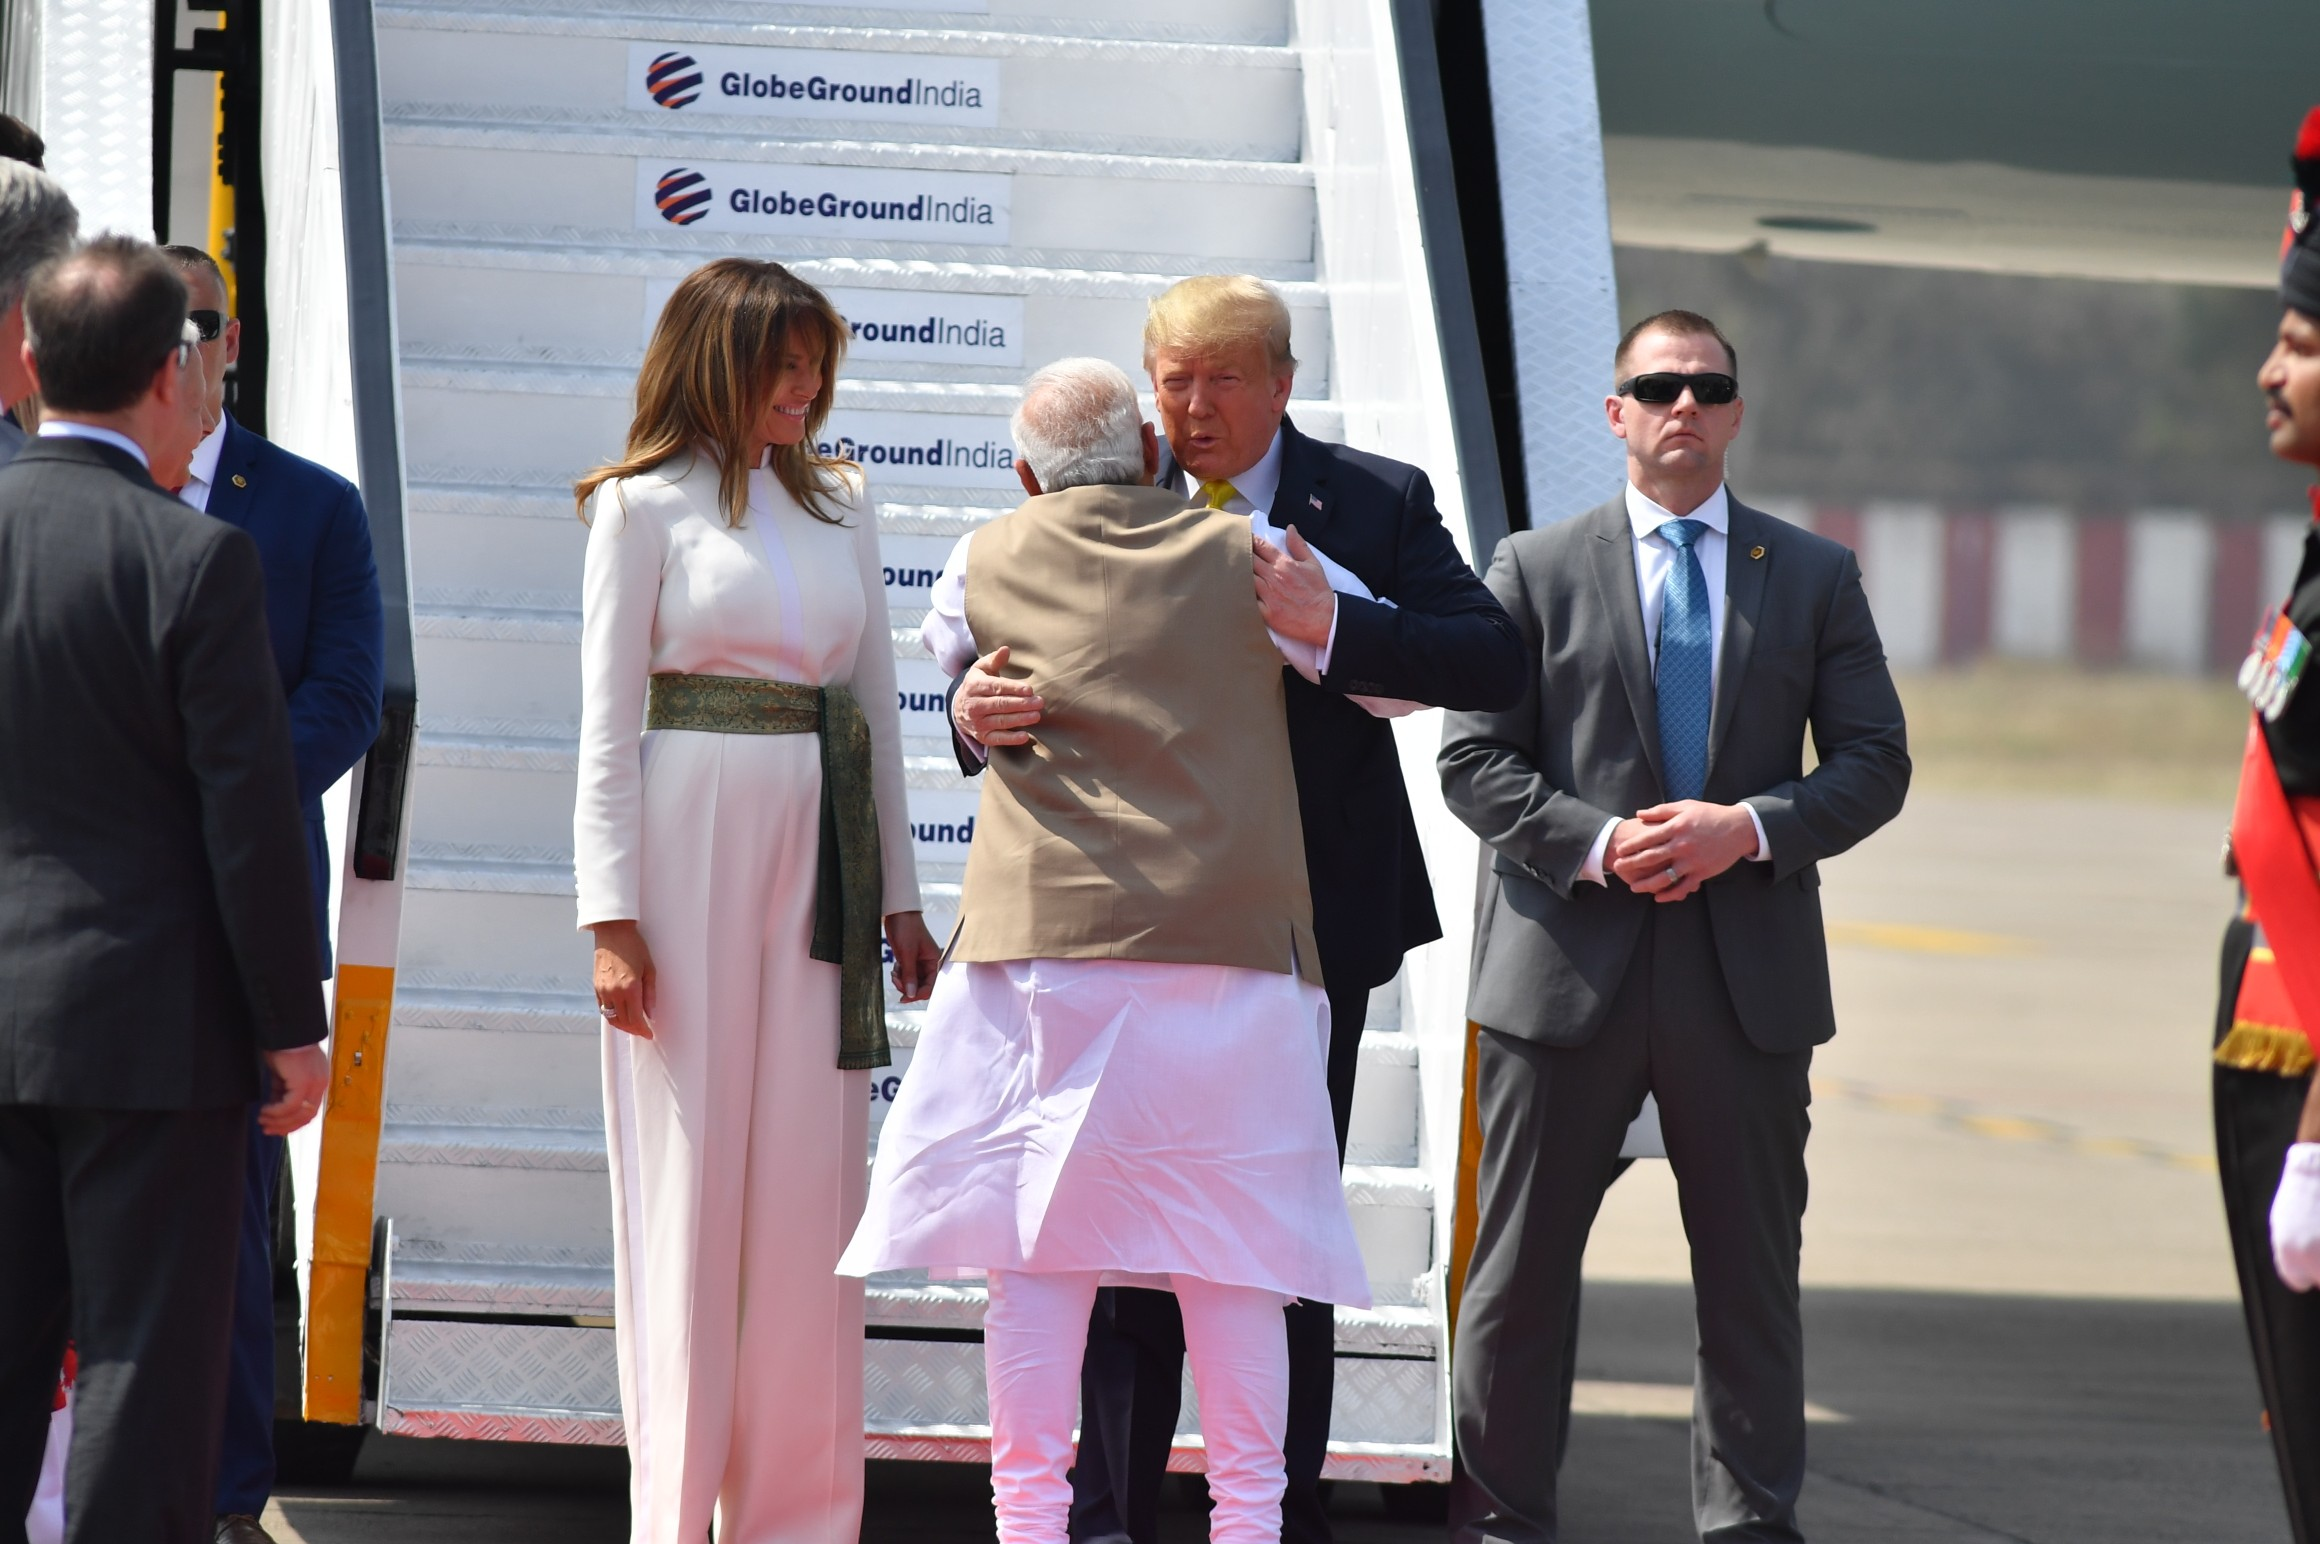 Prime Minister Narendra Modi greets US President Donald Trump as his wife Melania Trump looks on, upon their arrival at the Sardar Vallabhbhai Patel International Airport in Ahmedabad Monday, February 24, 2020